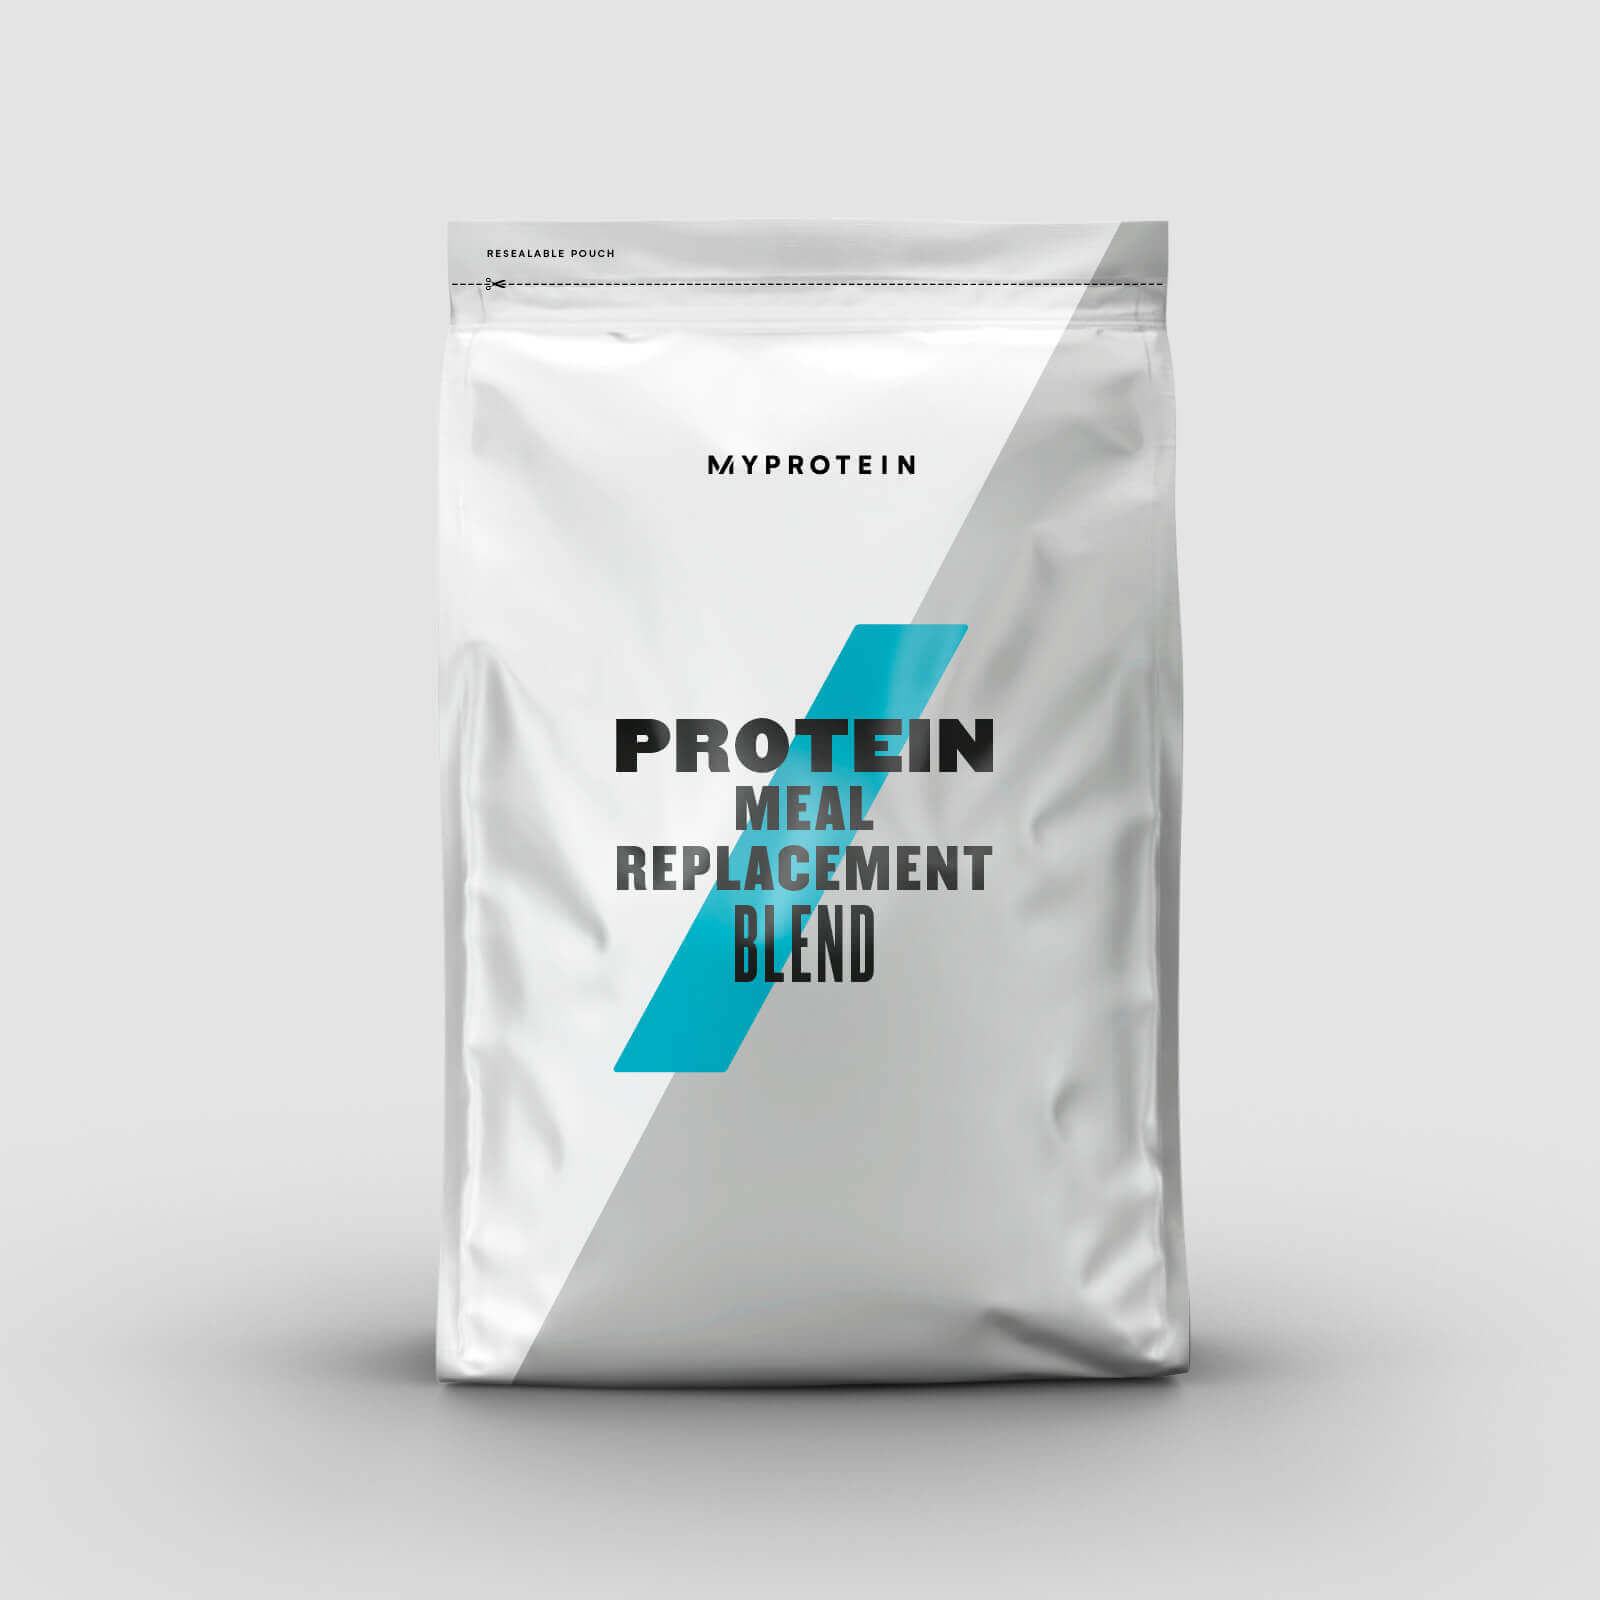 Protein Meal Replacement Blend product image